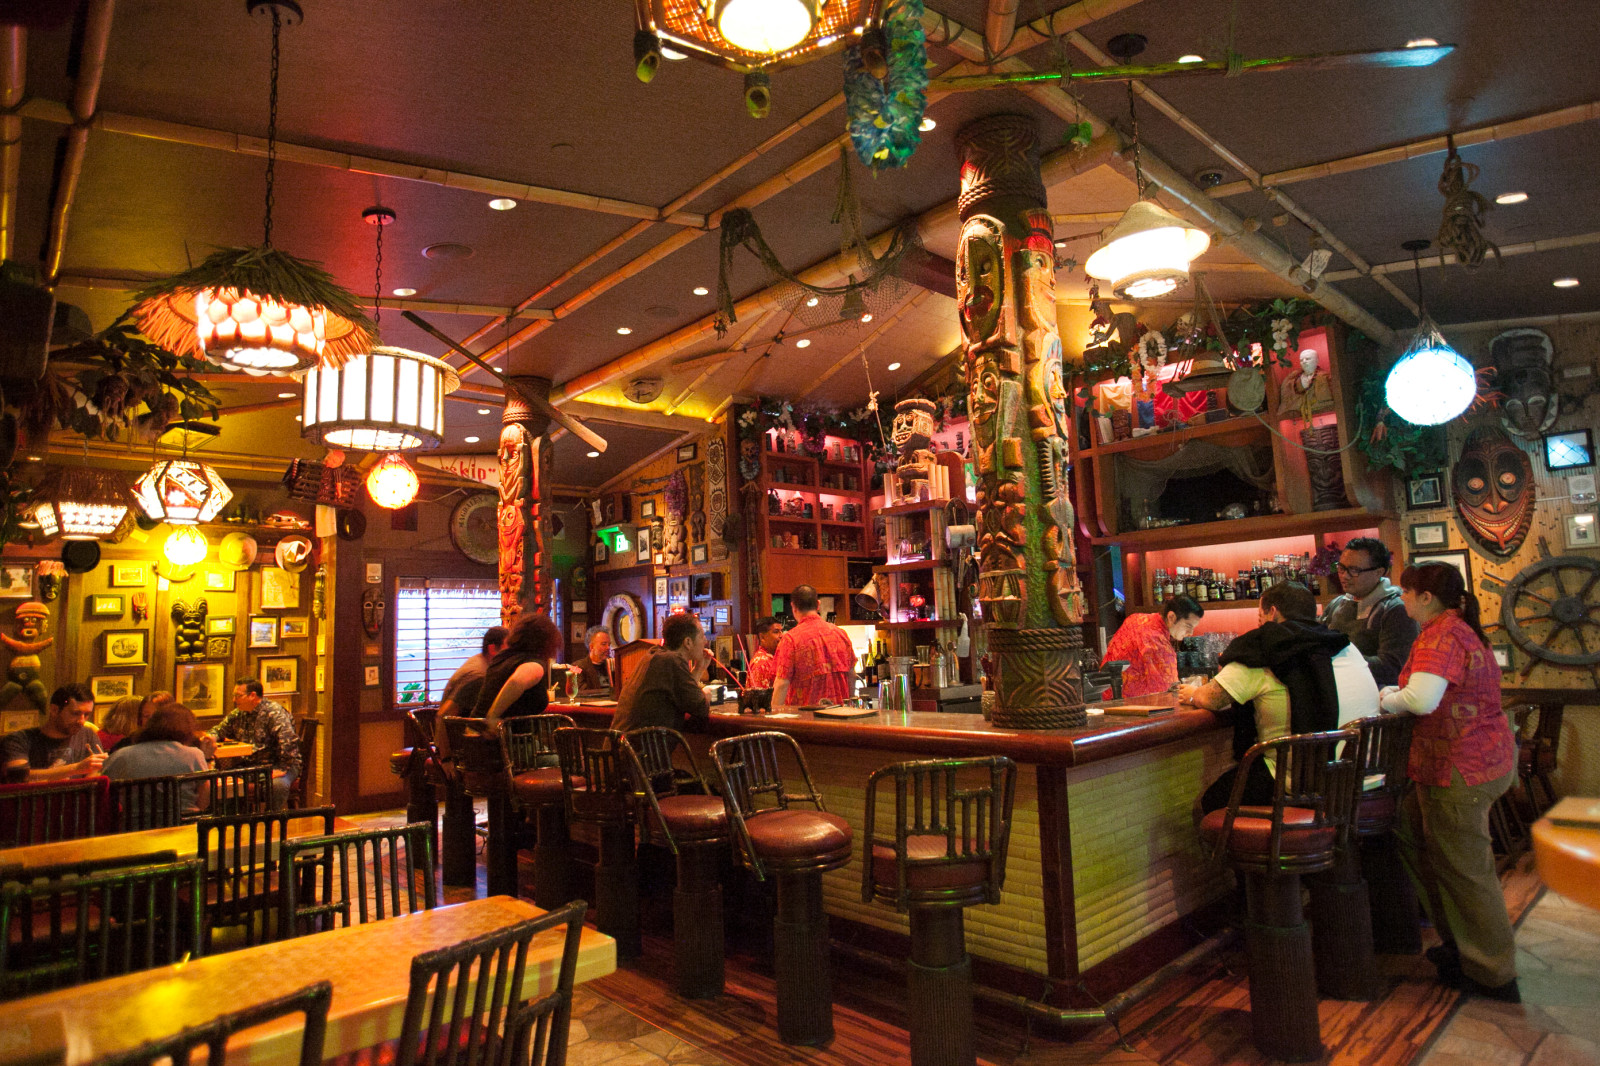 A Visit To Trader Sams Enchanted Tiki Bar On The Go In MCO